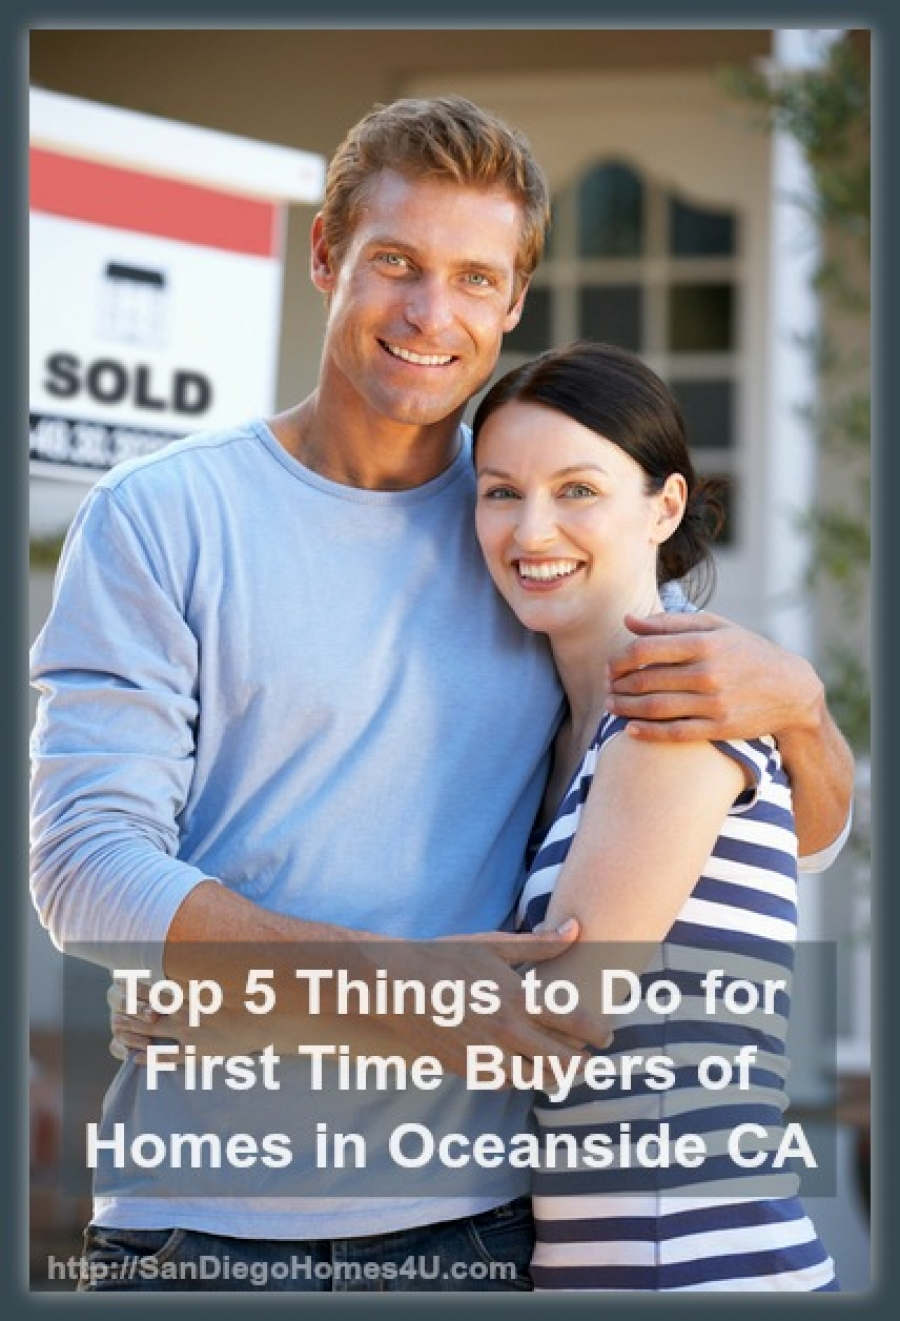 Top 5 Things to Do for First Time Buyers of Homes in Oceanside CA